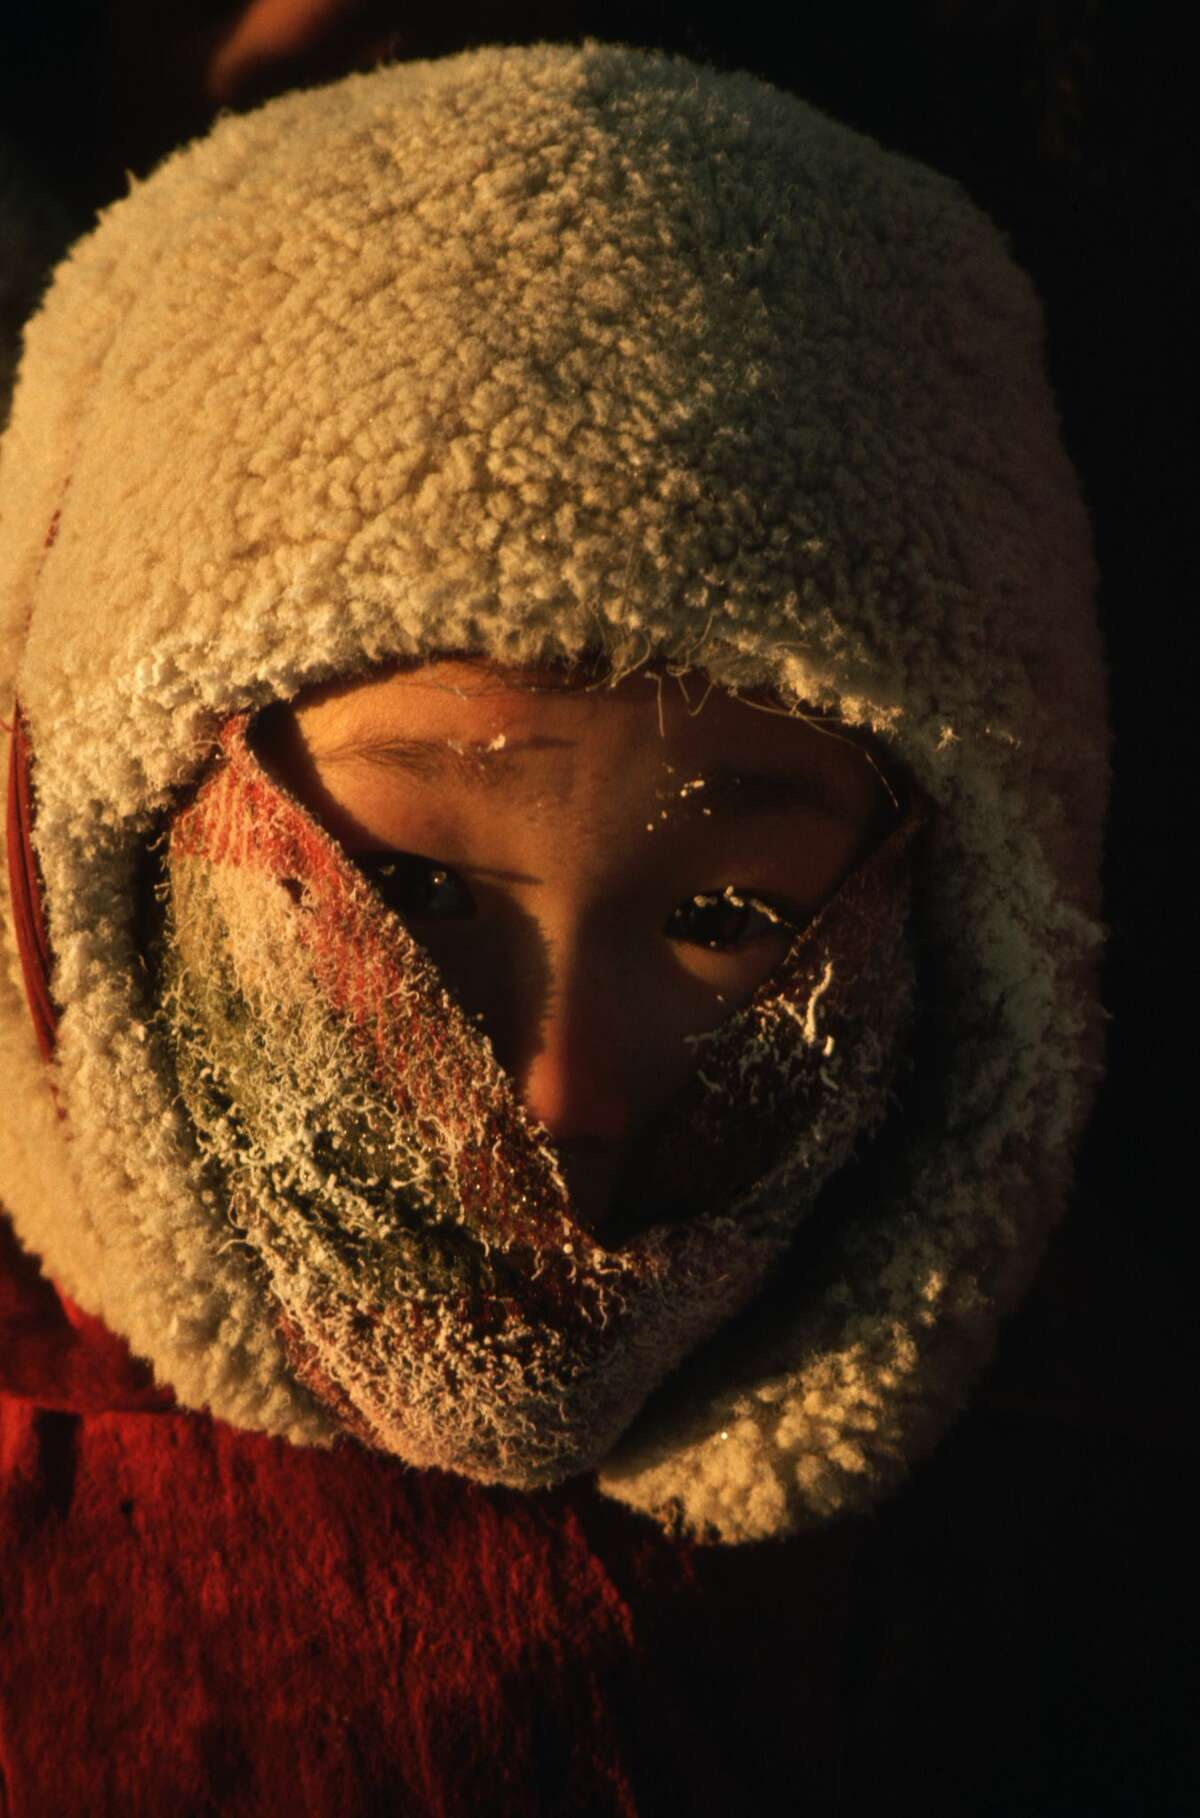 Yakut child wrapped up against the cold (Photo by Dean Conger/Corbis via Getty Images)